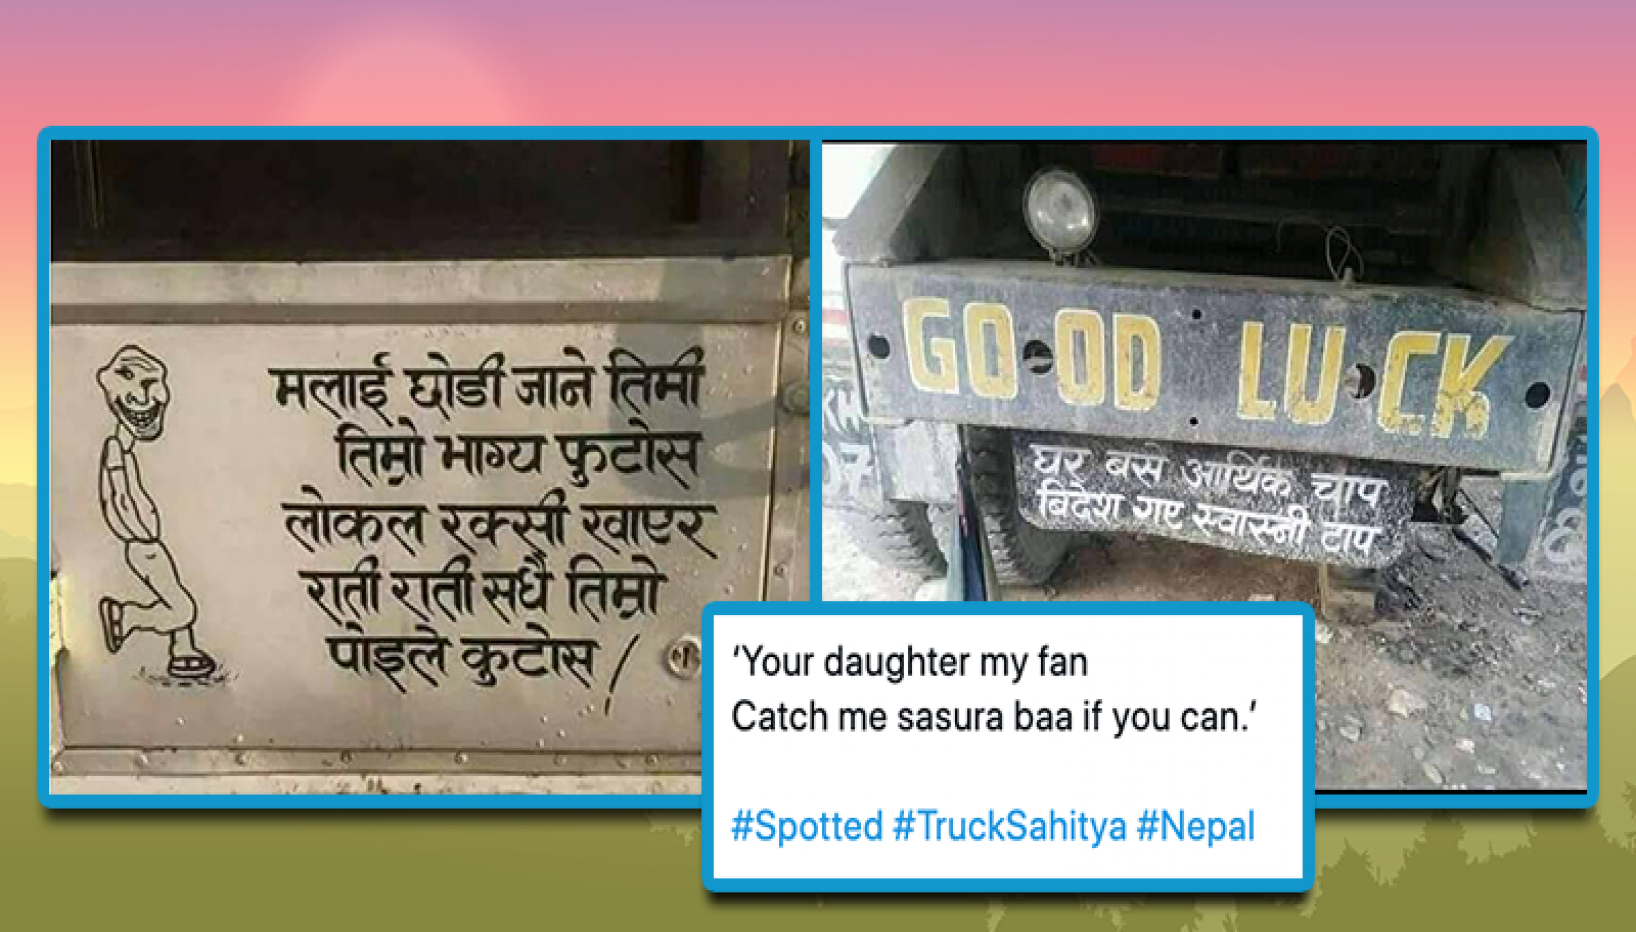 20 Hilarious Verses Of Truck Sahitya That Will Make You Want To Hit The Road